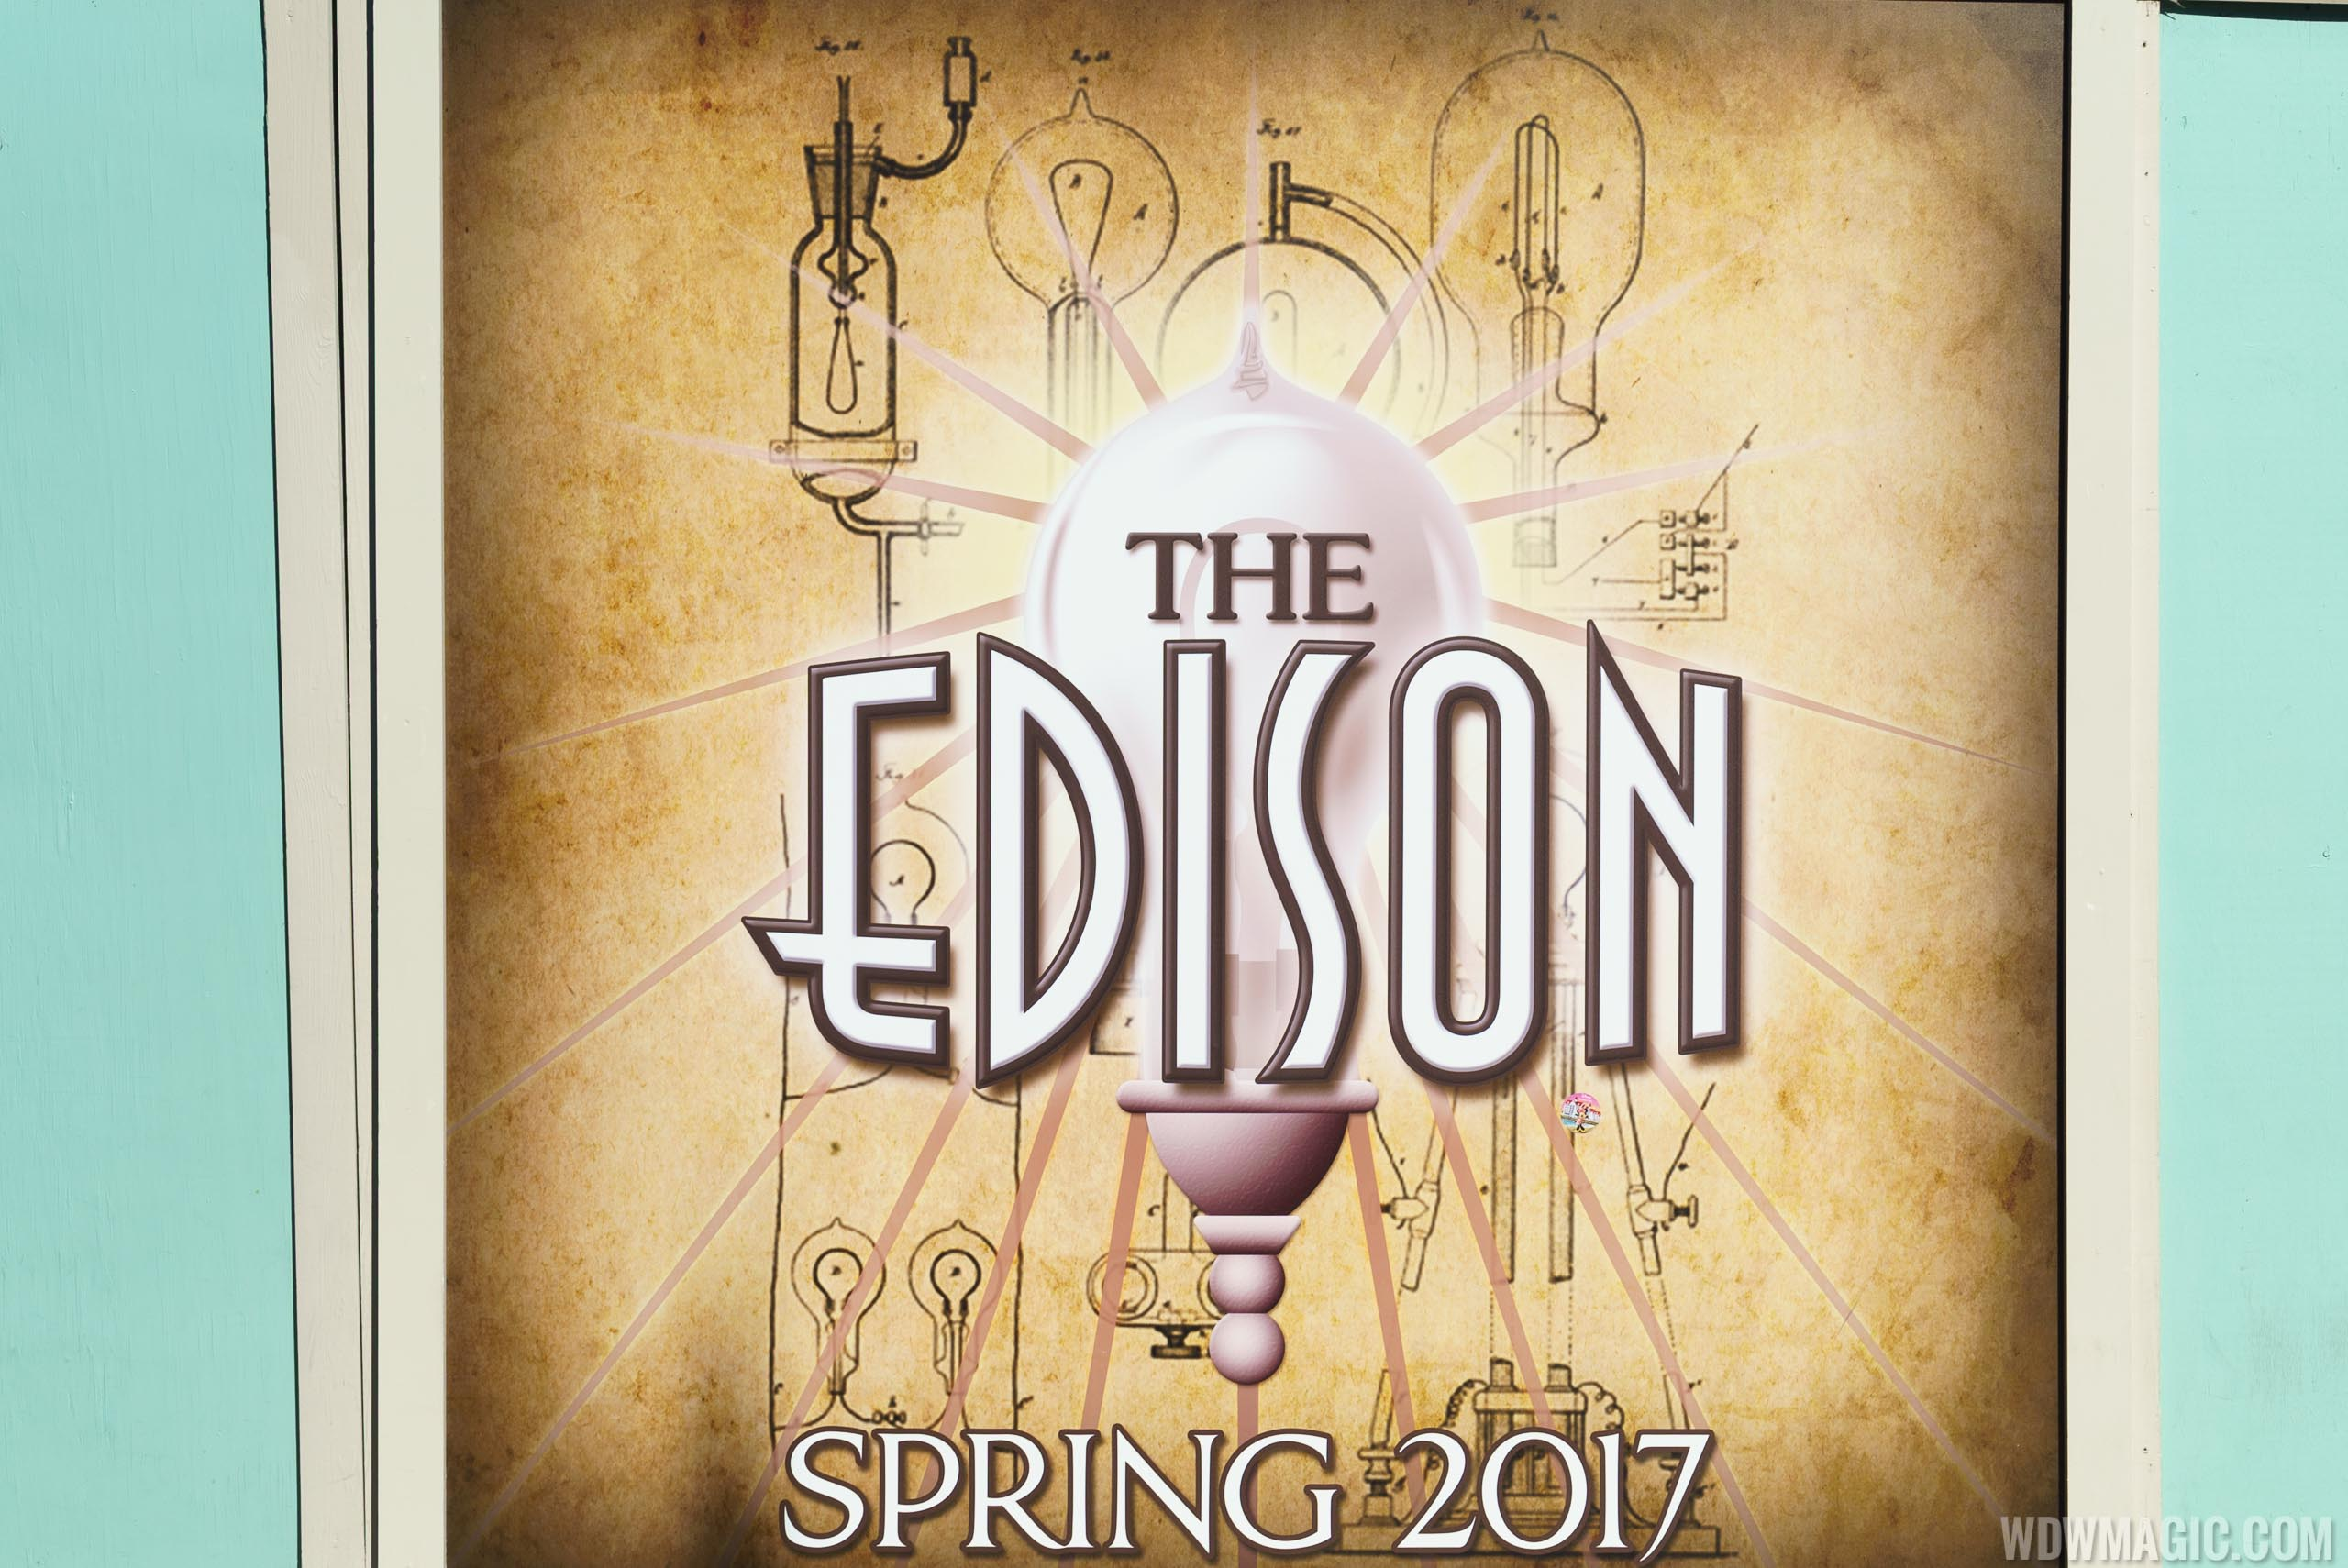 The Edison Opening Spring 2017